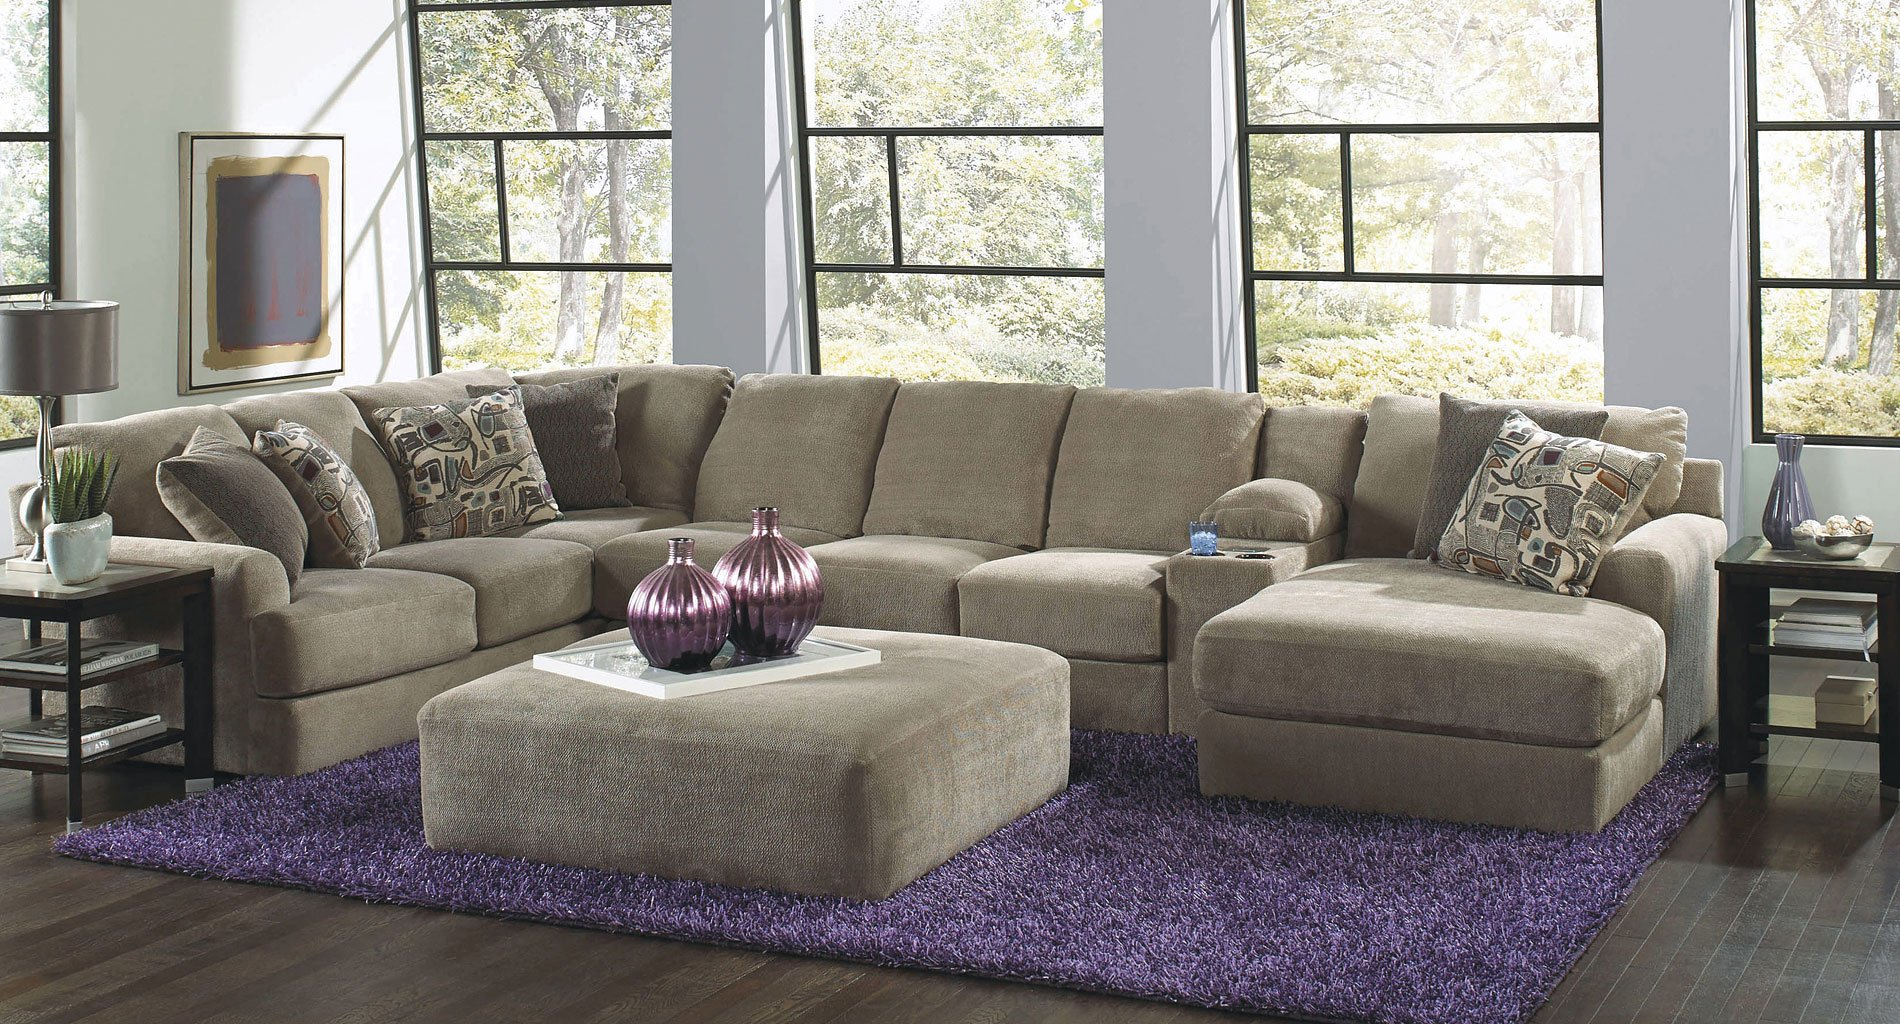 Malibu Modular Sectional Set Taupe Jackson Furniture 2